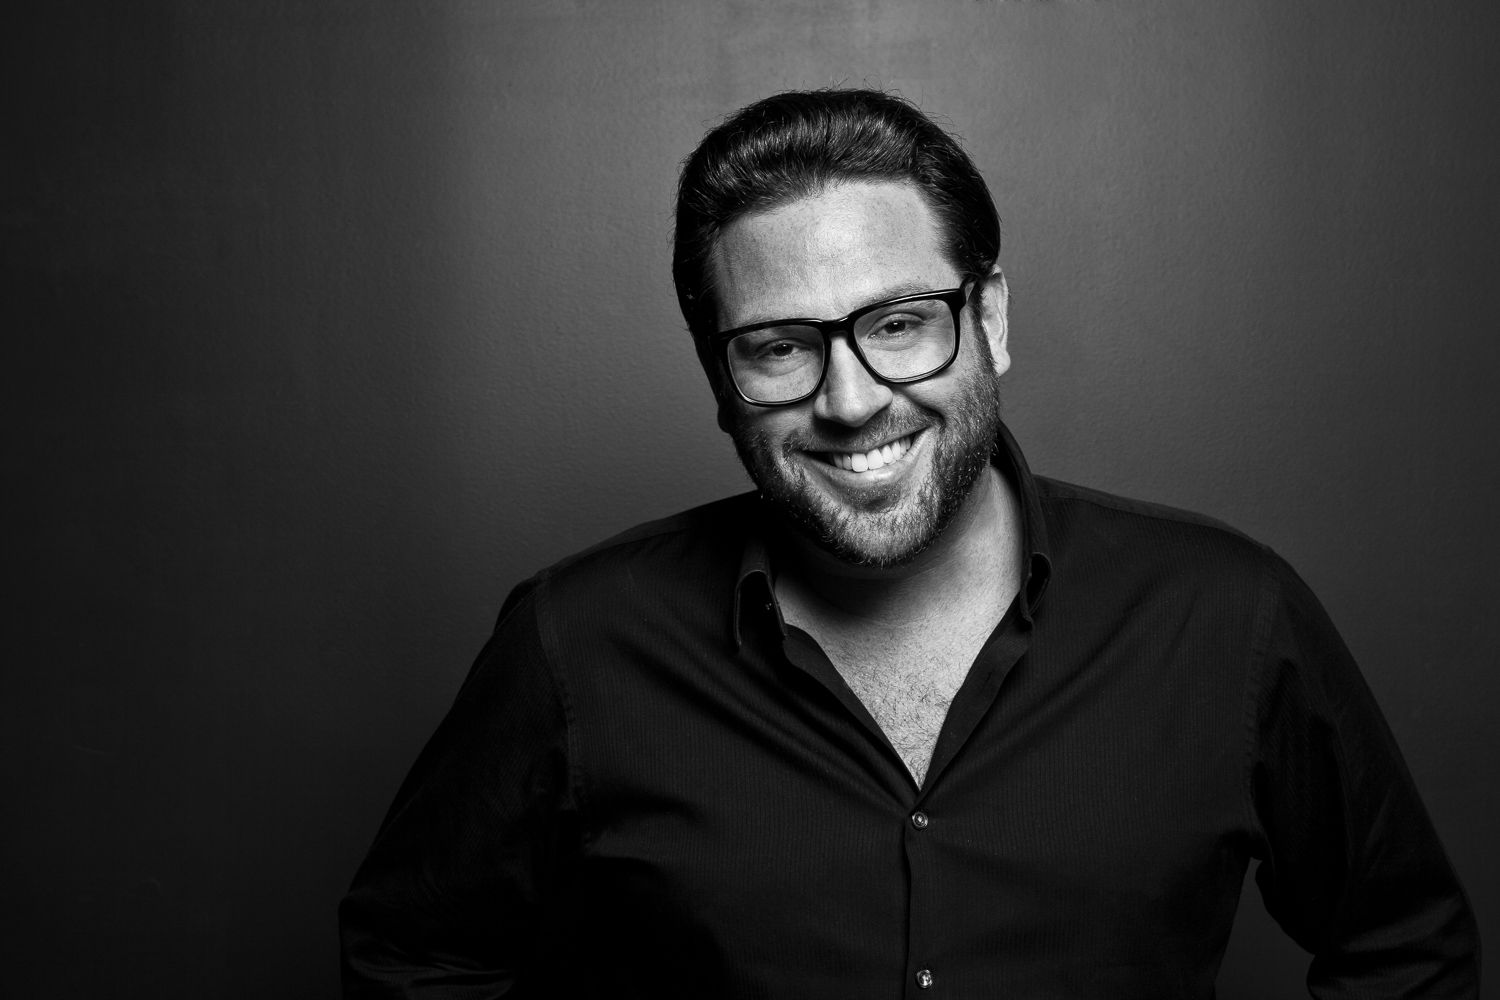 Chef Scott Conant smiles in a black and white photographer.